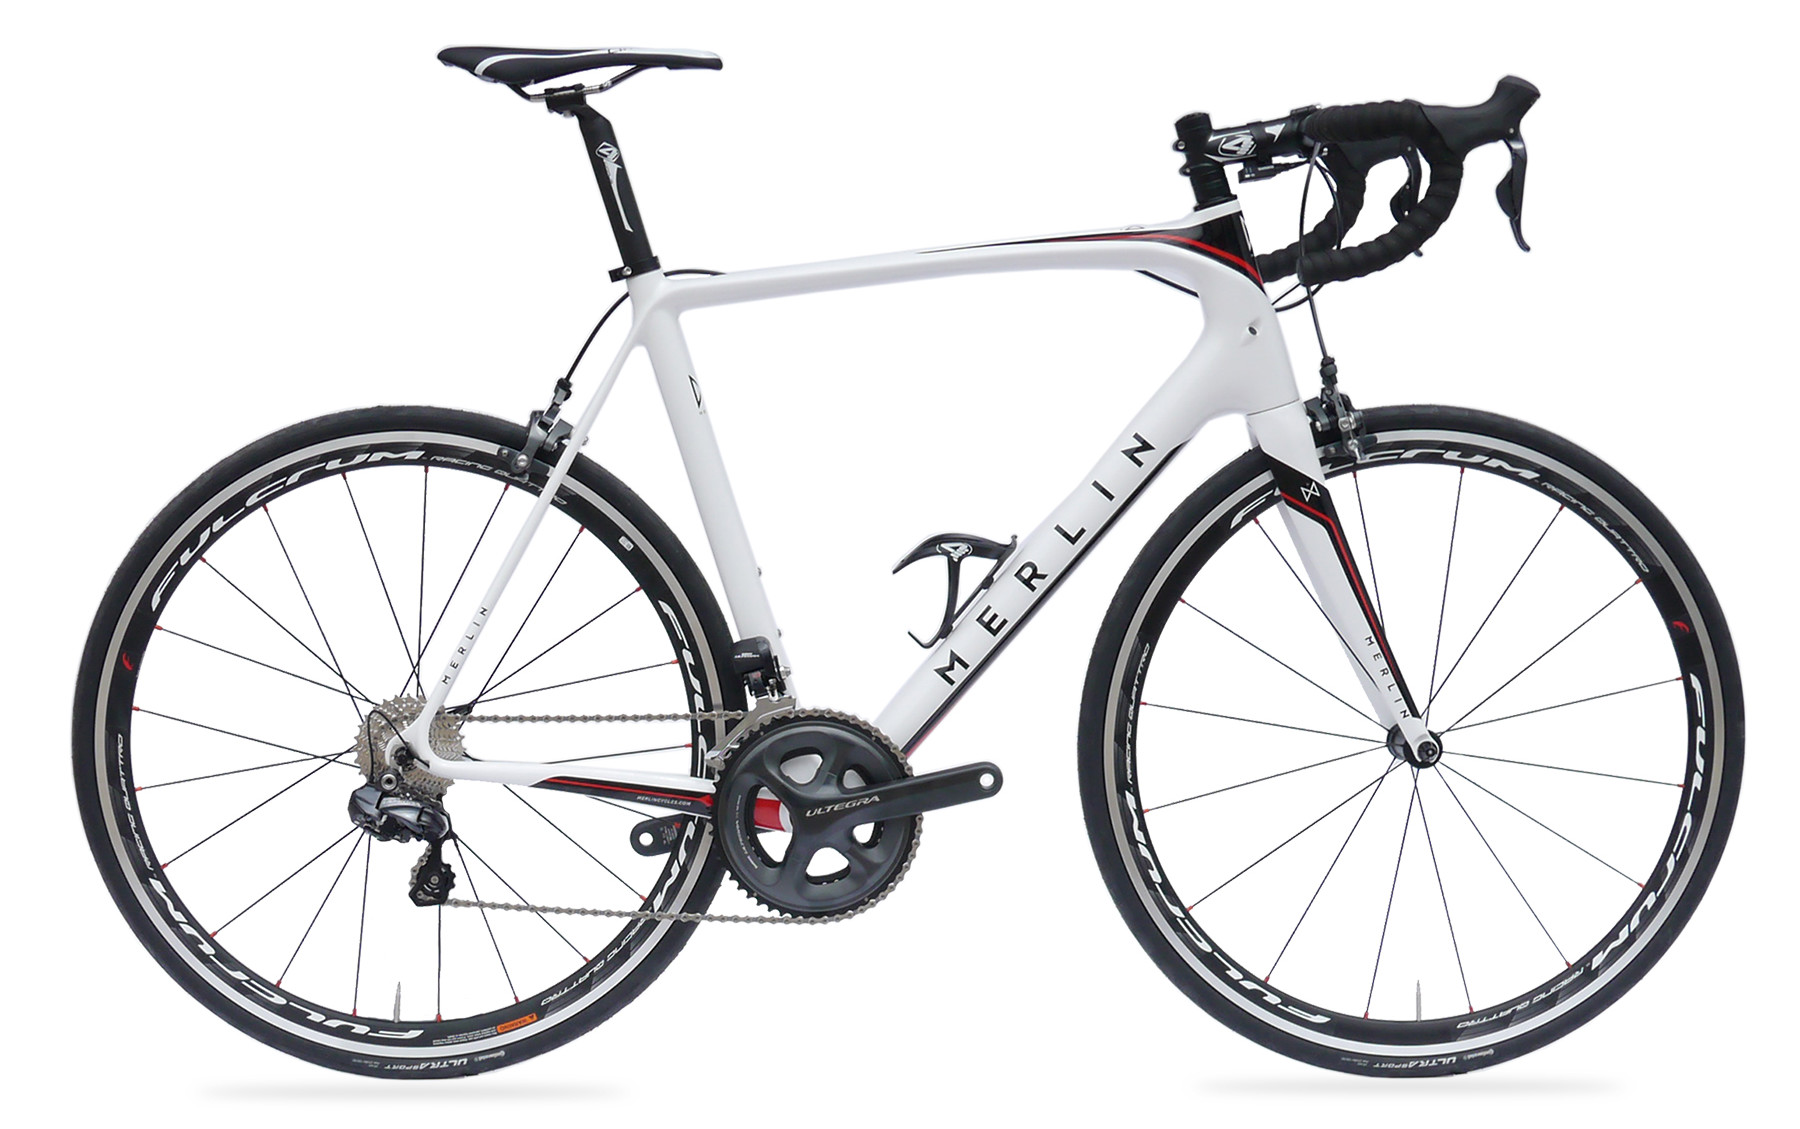 The Merlin Cordite provides cyclists with the ultimate racing experience and is a good investment for serious cyclists. If you do not mind spending a little extra, the Merlin Cordite is a great buy. You will have essentially no complaints with this bike.